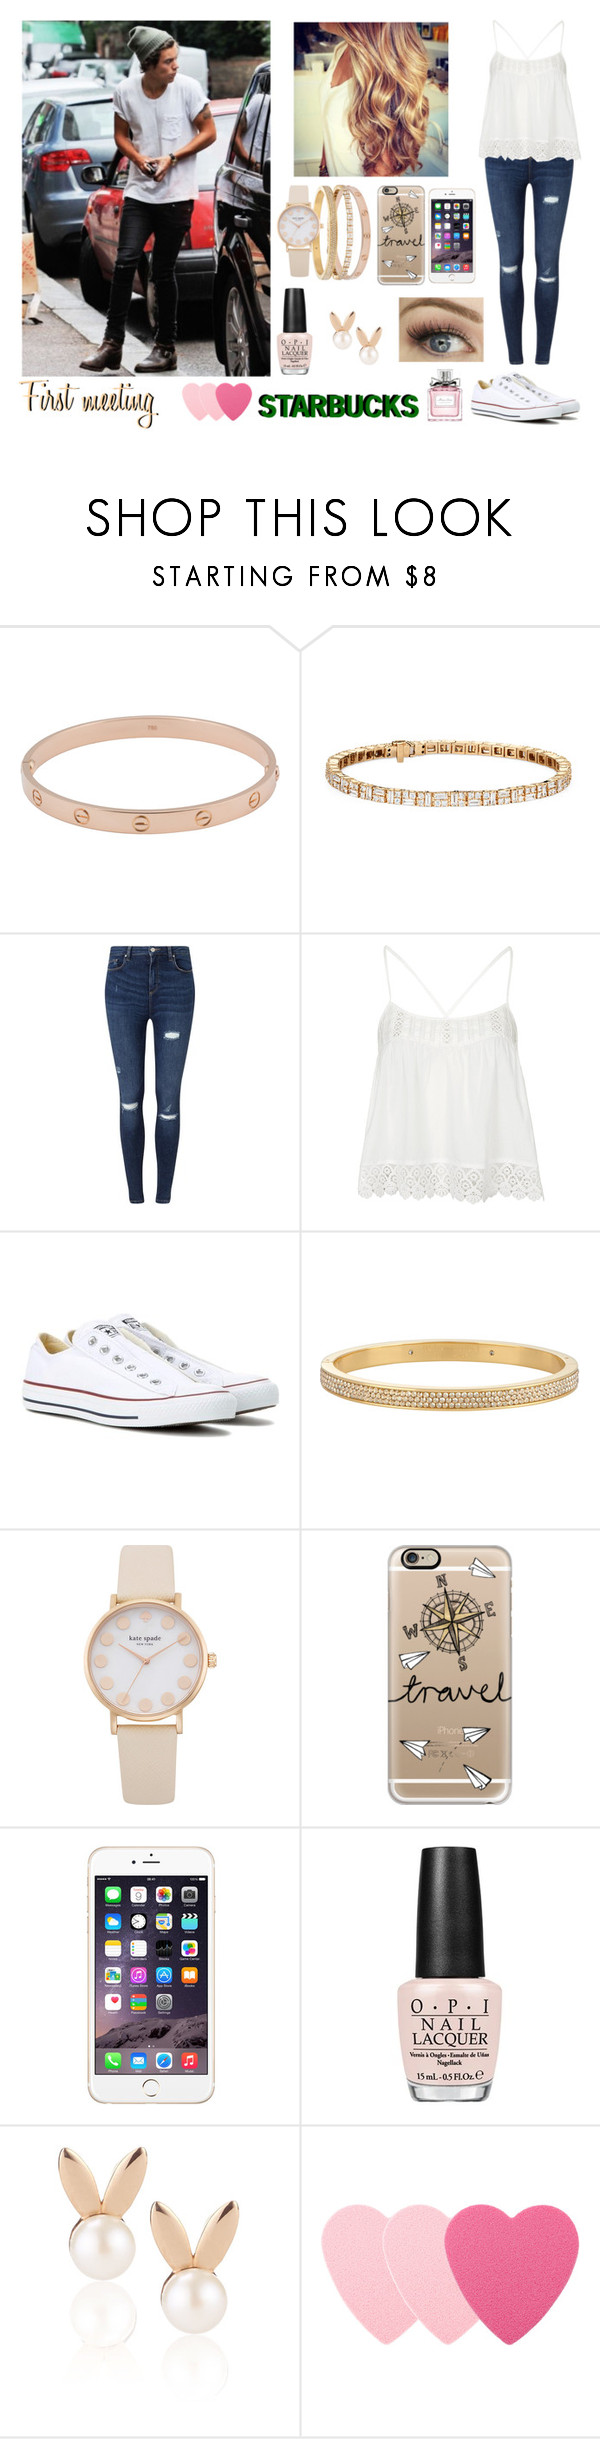 """""""First meeting with Harry"""" by mllestylesusa ❤ liked on Polyvore featuring Cartier, Miss Selfridge, Topshop, Converse, Henri Bendel, Casetify, OPI, Aamaya by priyanka, Sephora Collection and Christian Dior"""